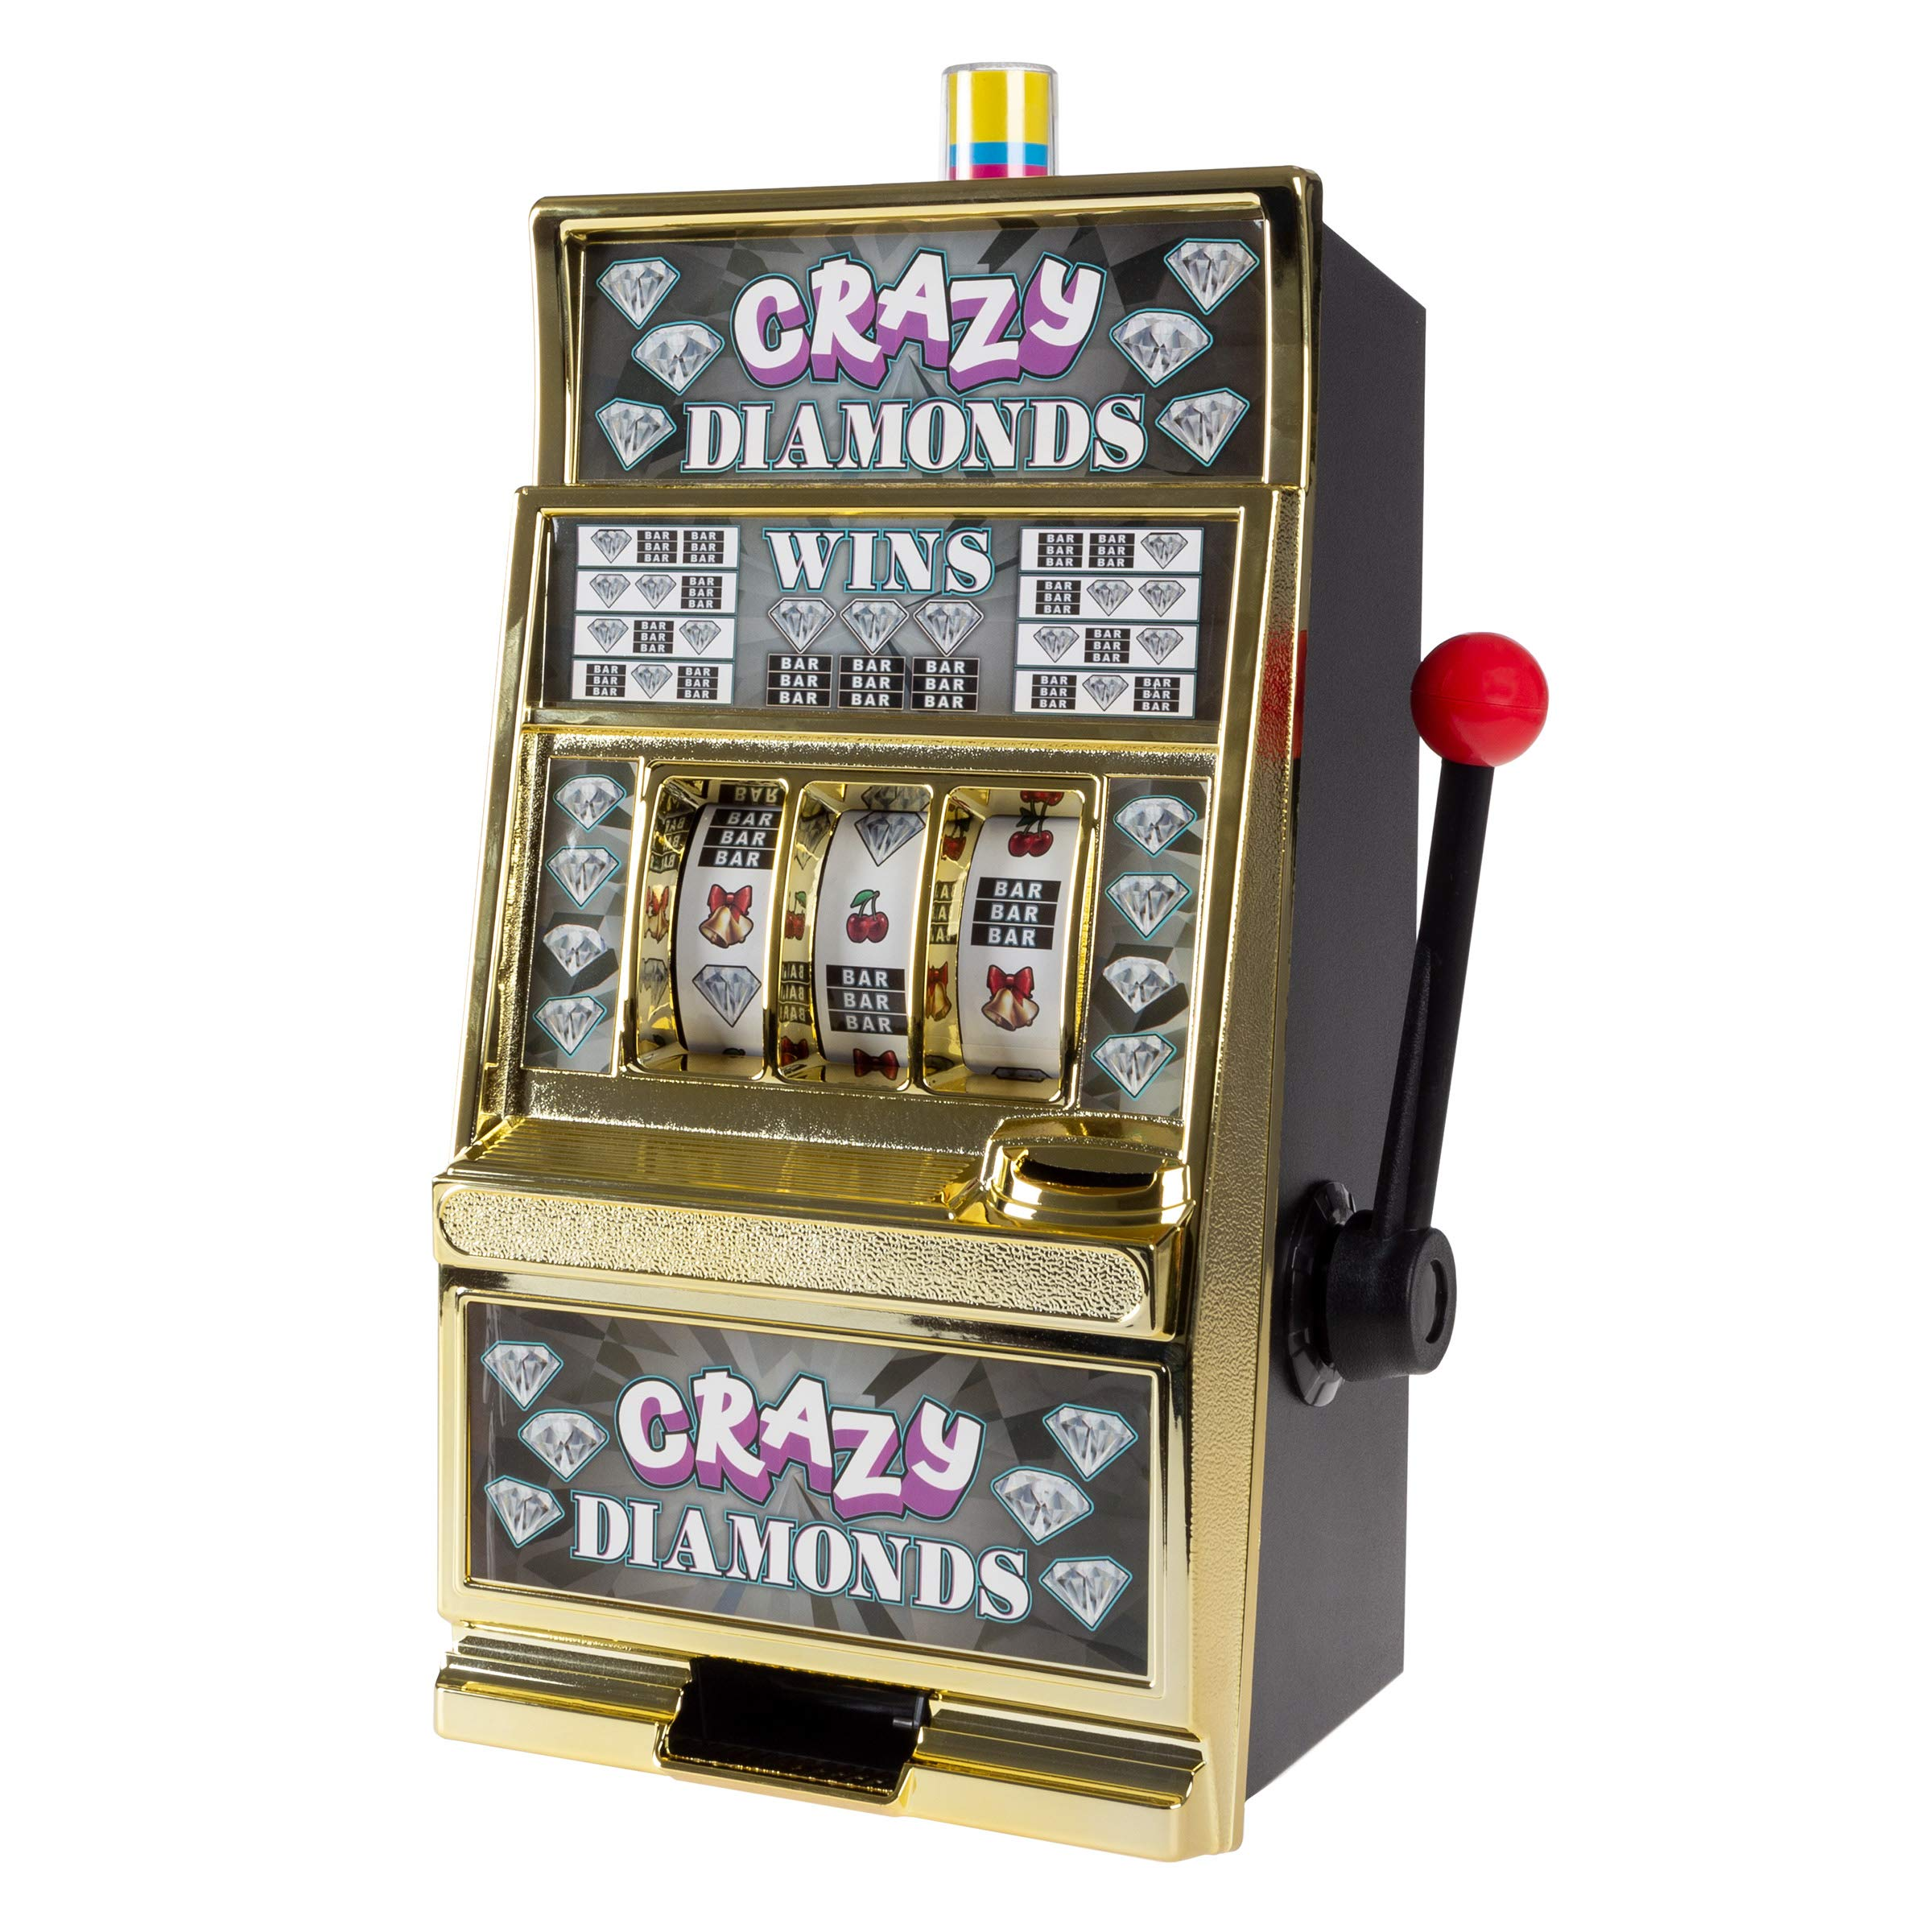 Trademark Gameroom Slot Machine Coin Bank - Electronic Realistic Mini Table Top Novelty Casino Toy with Lever for Kids & Adults (Crazy Diamonds)